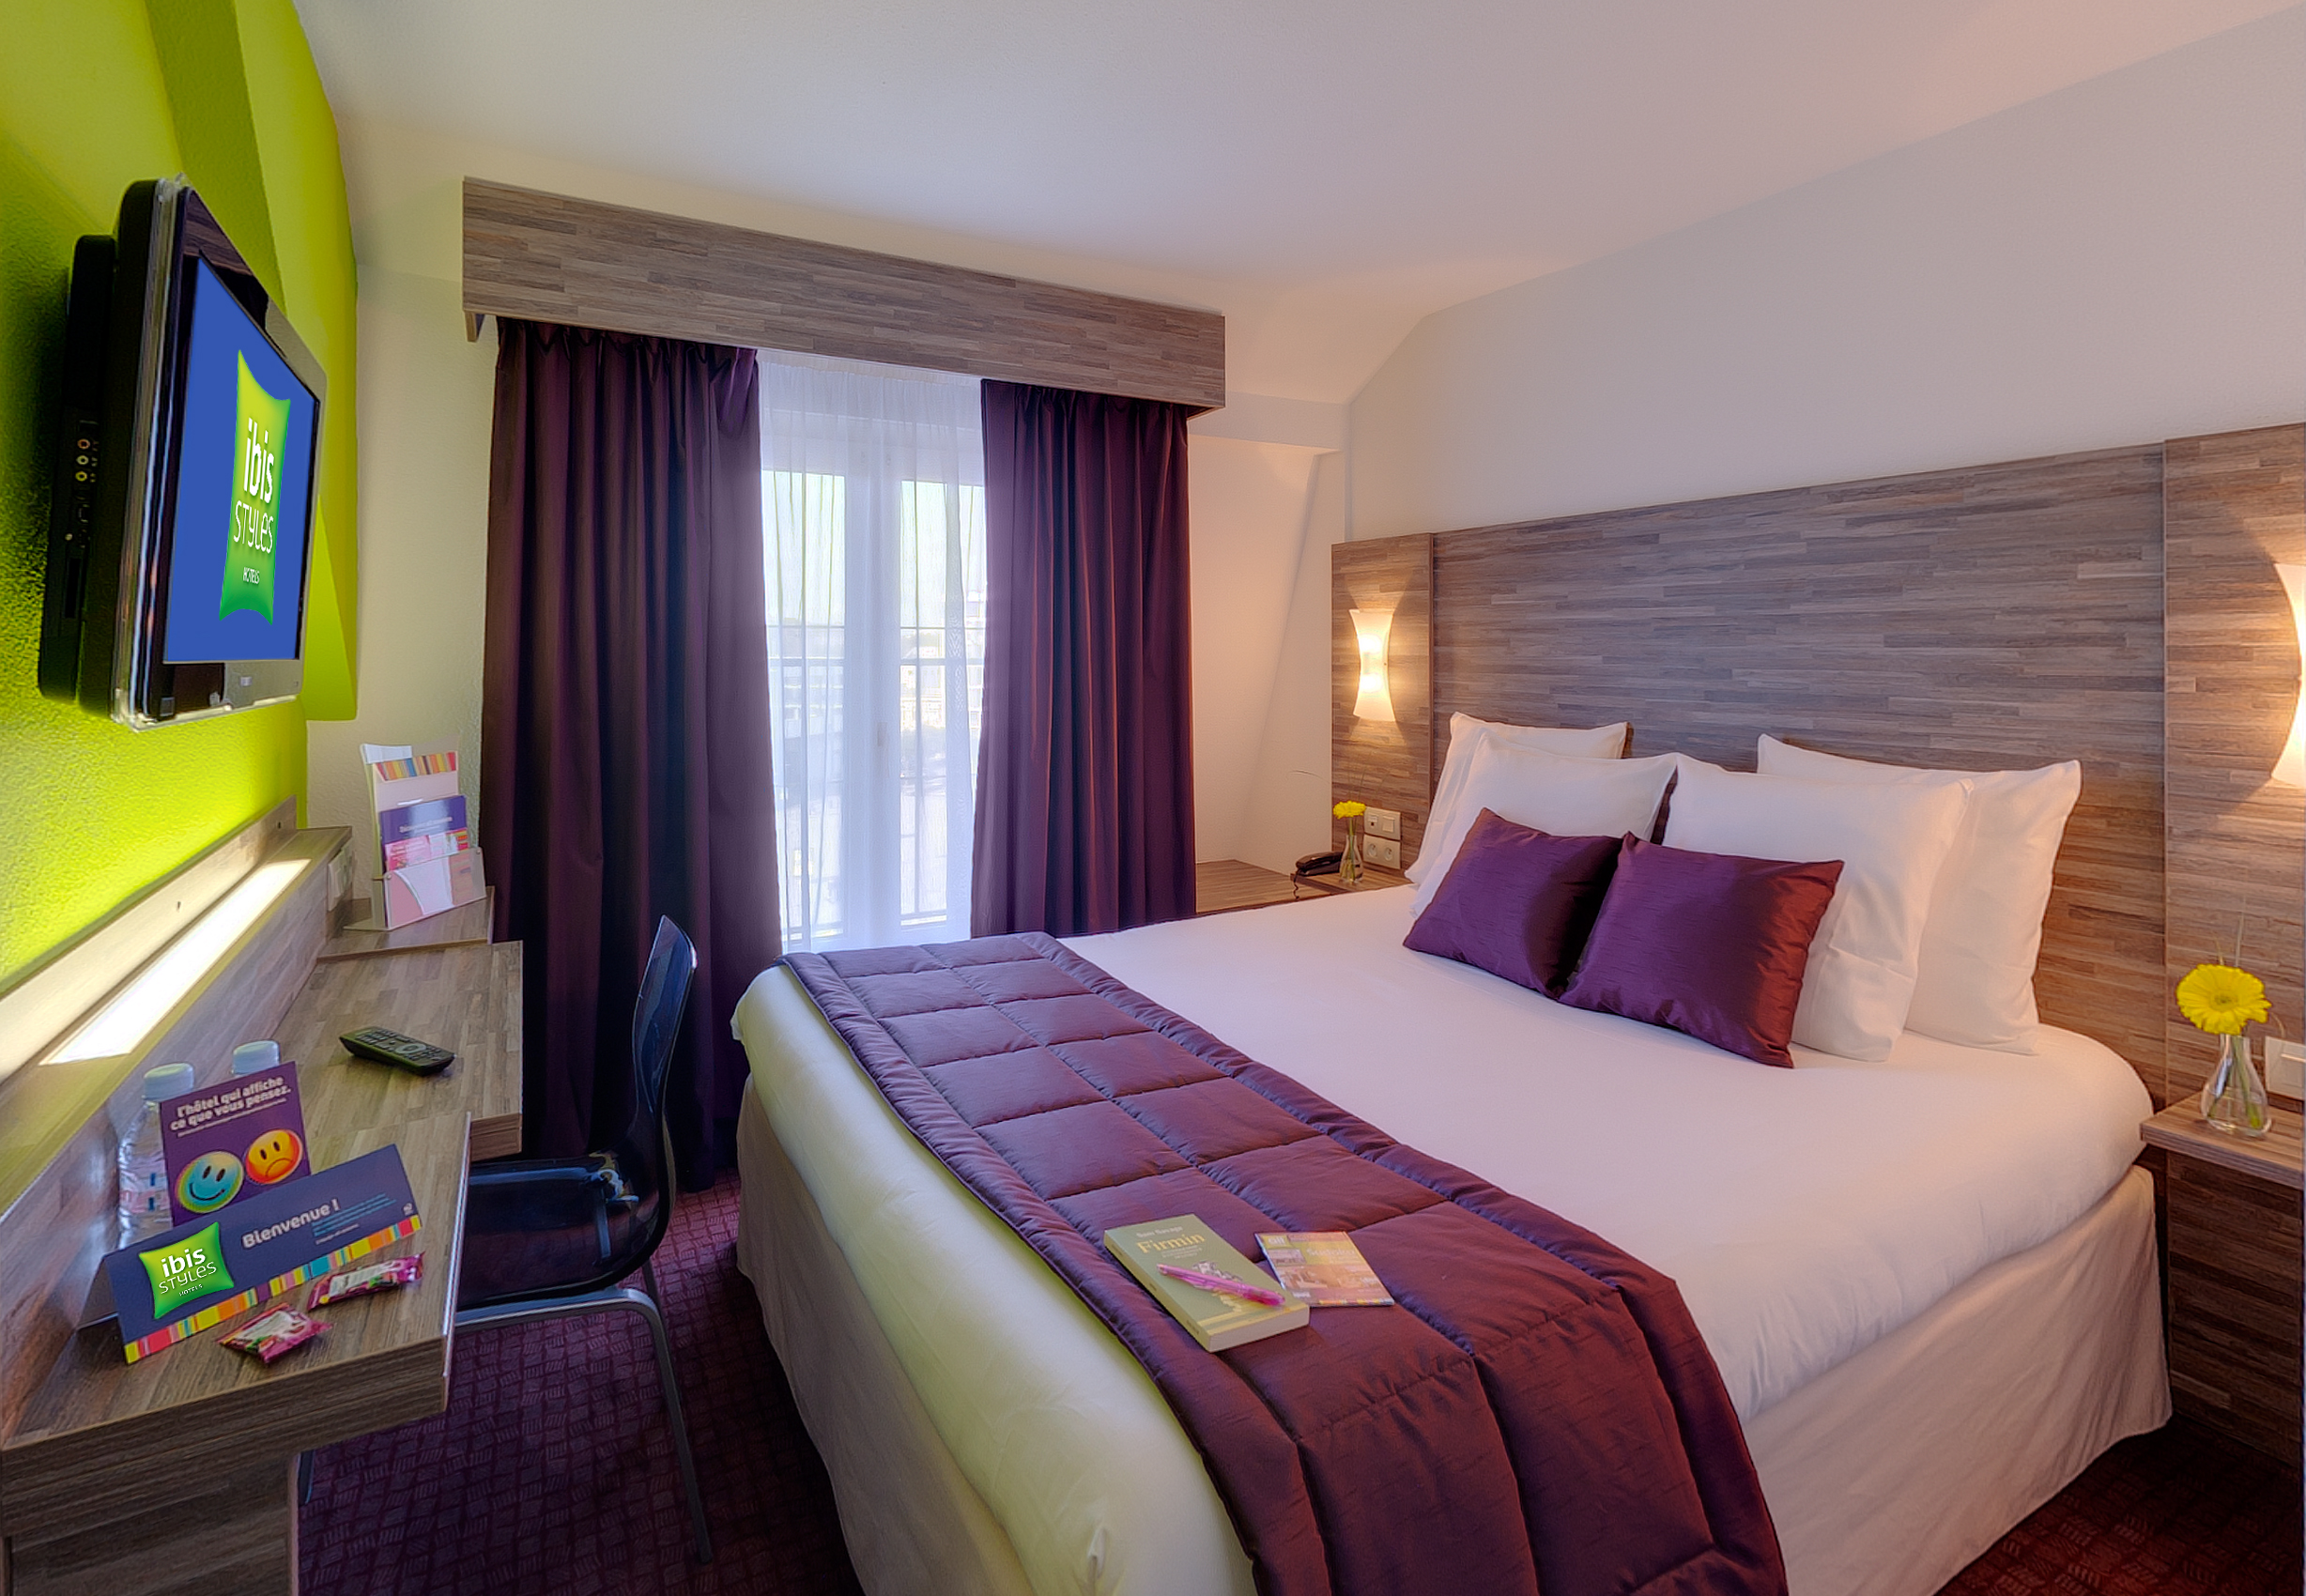 Hotel Ibis Styles Rennes Centre Gare Nord